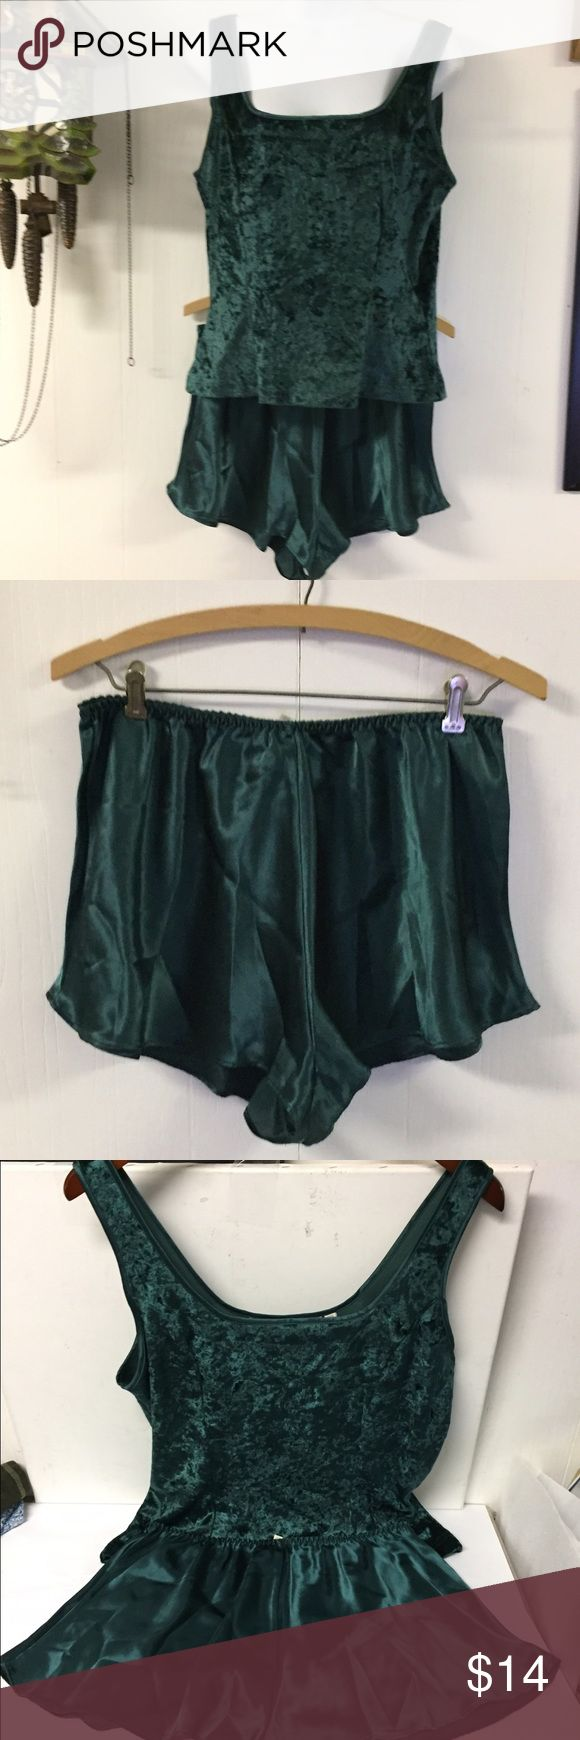 "Victoria's Secret Hunter Green Velvet PJ Set sz L Excellent clean condition.  Stated size ze L. Tank style top of Velvet Feel fabric. And Shorts with satin style sheen. Shorts have elastic in waist.  Waist 26-38"".  Tank style top bust 38-42"". Victoria's Secret Intimates & Sleepwear Pajamas"